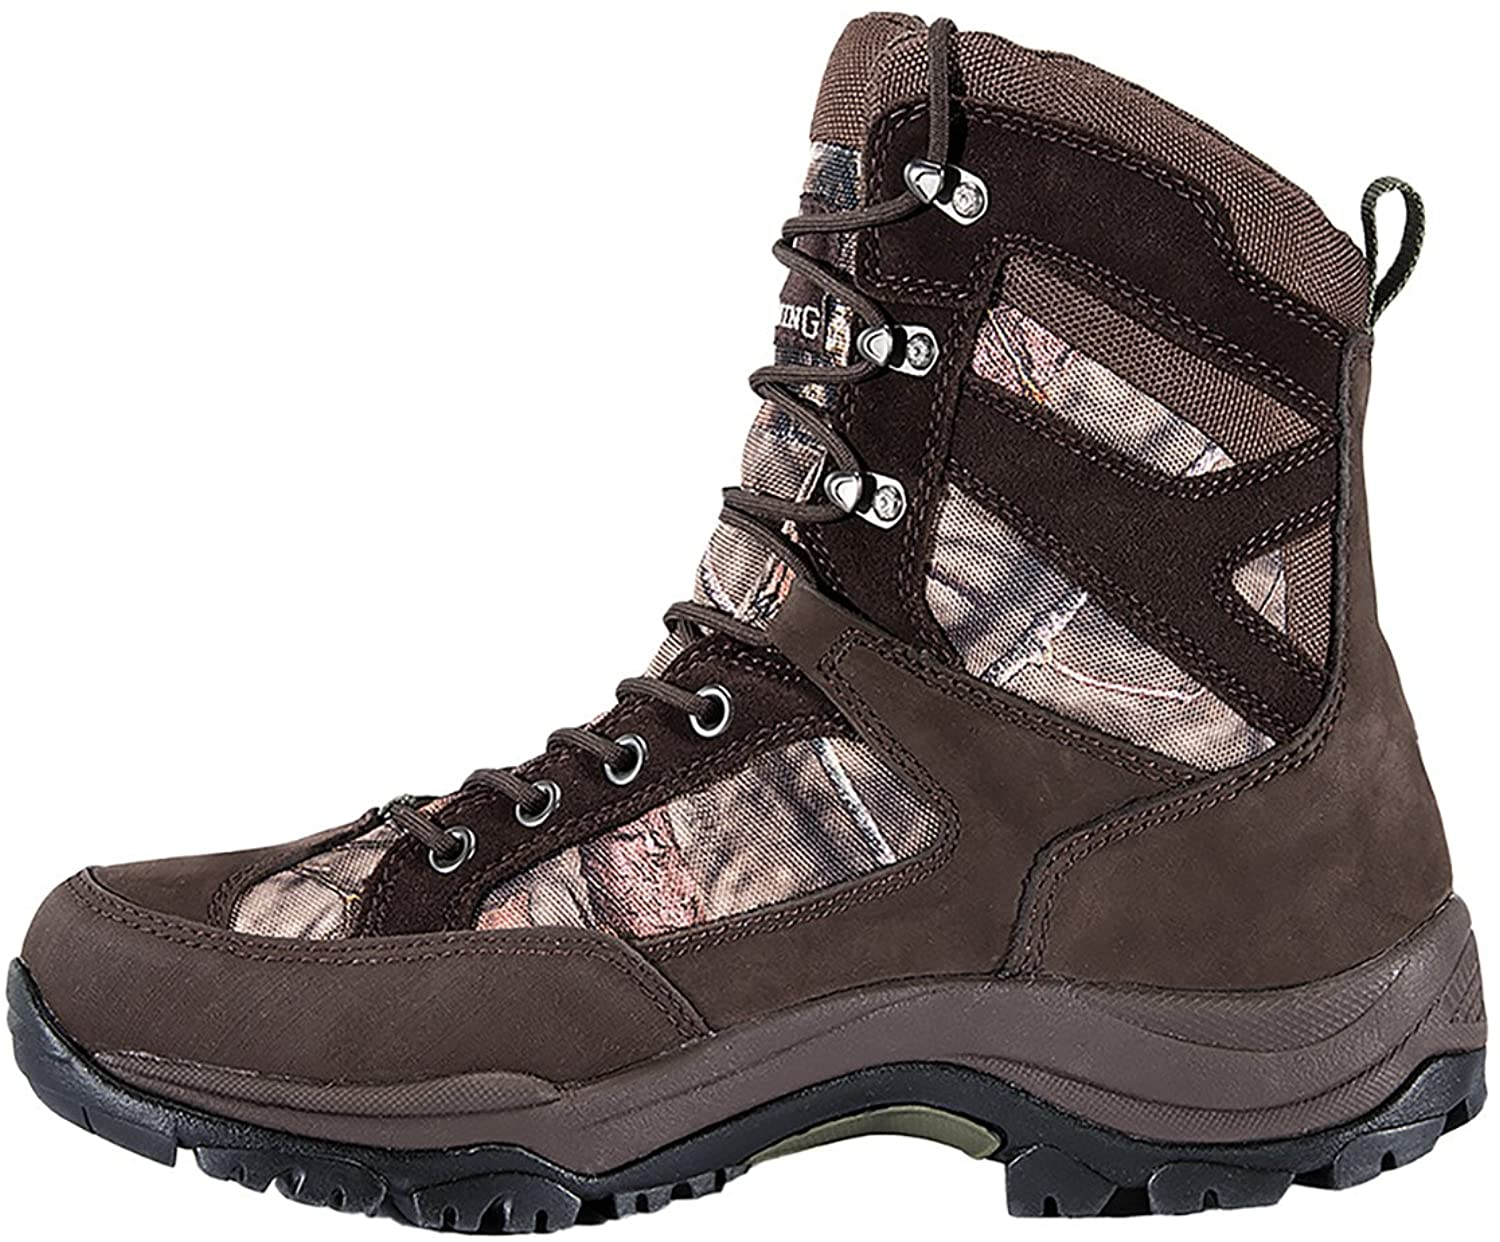 Browning Mens Buck Pursuit 8in Oxford Hunting Boots - 400g, Bracken/Mossy Oak F000005620236